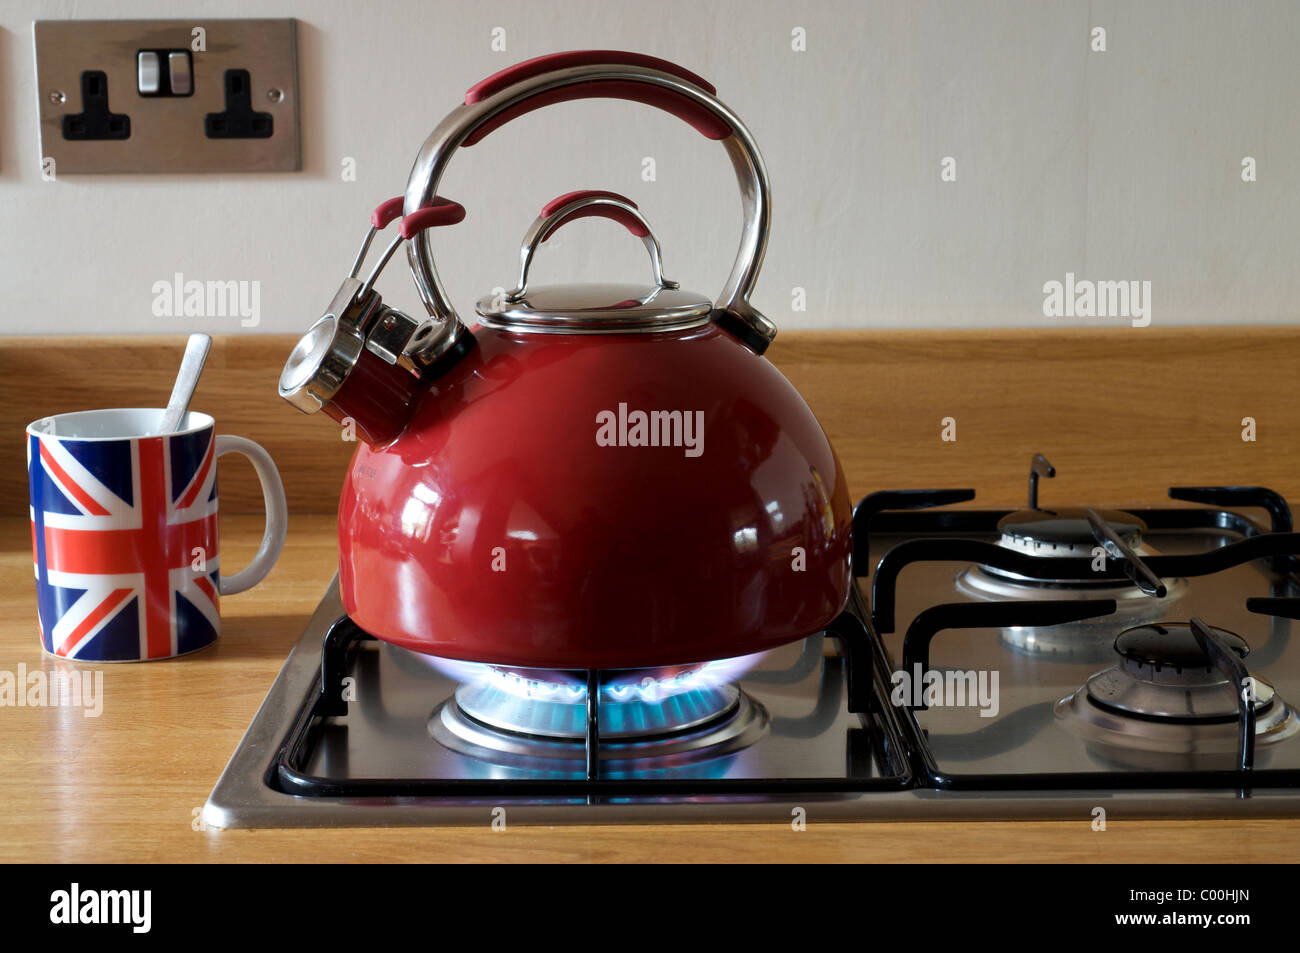 Gas kettle on hob - Stock Image